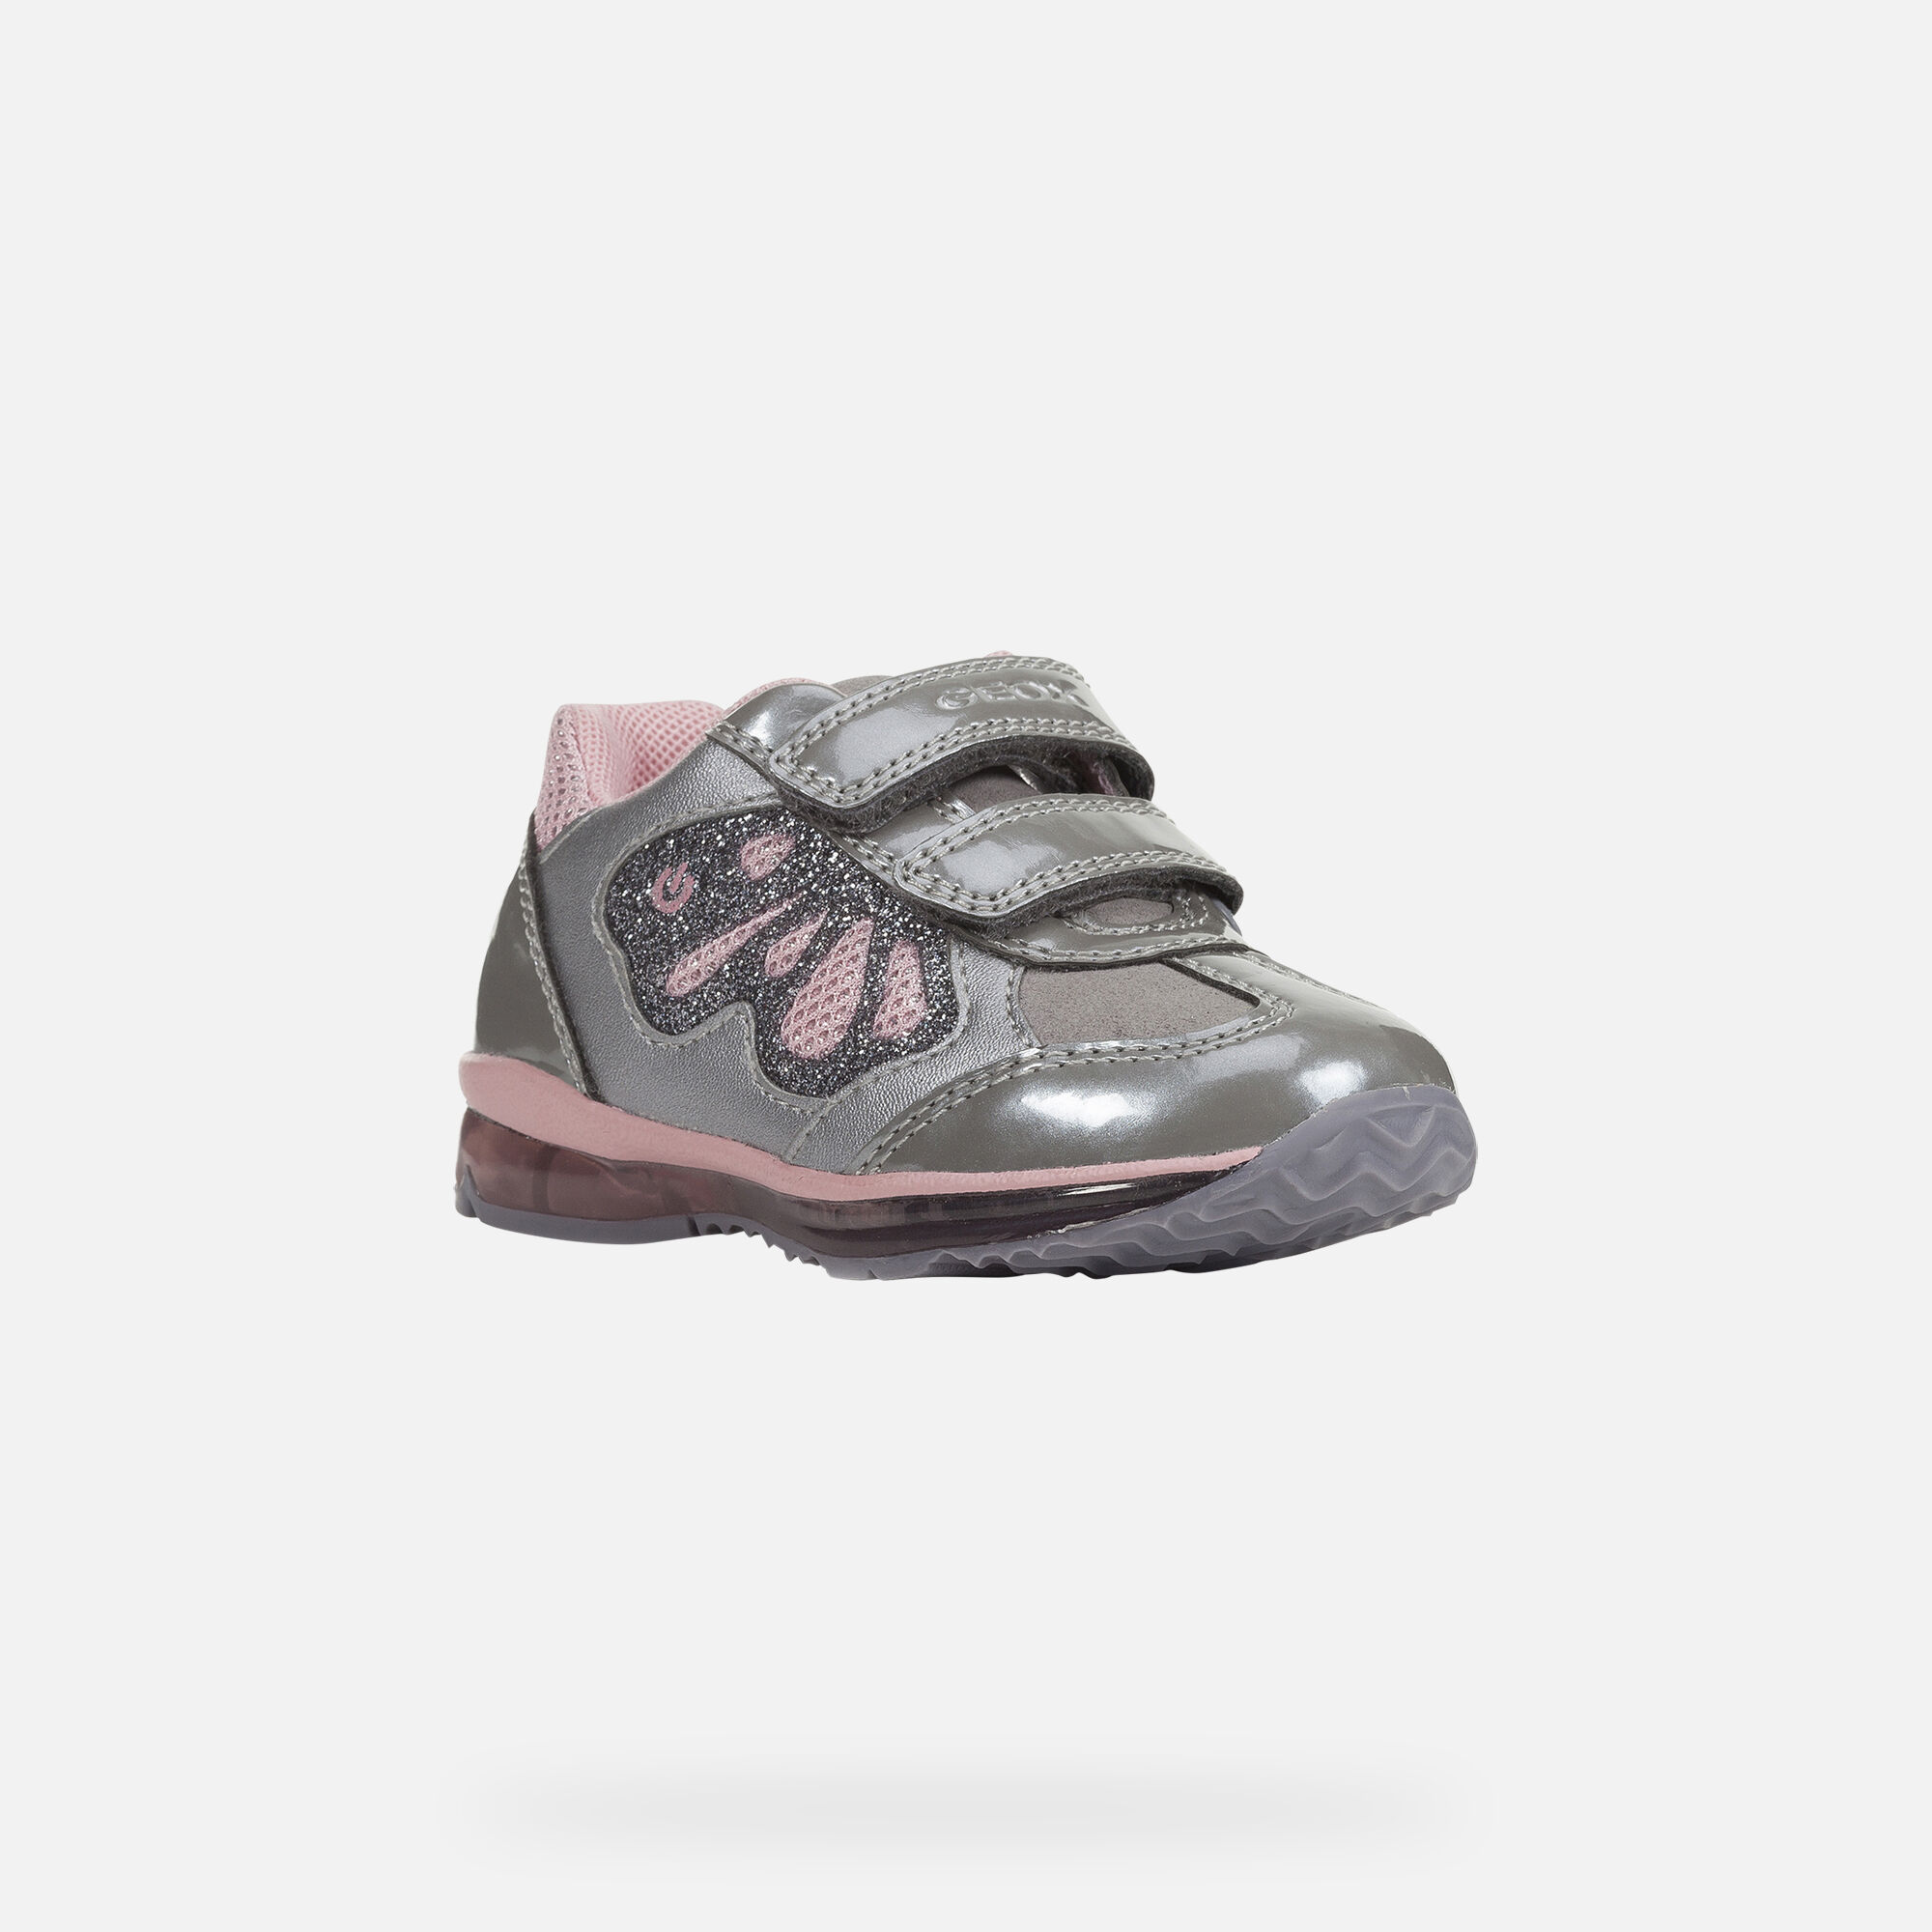 Geox Chaussures Todo Petite fille